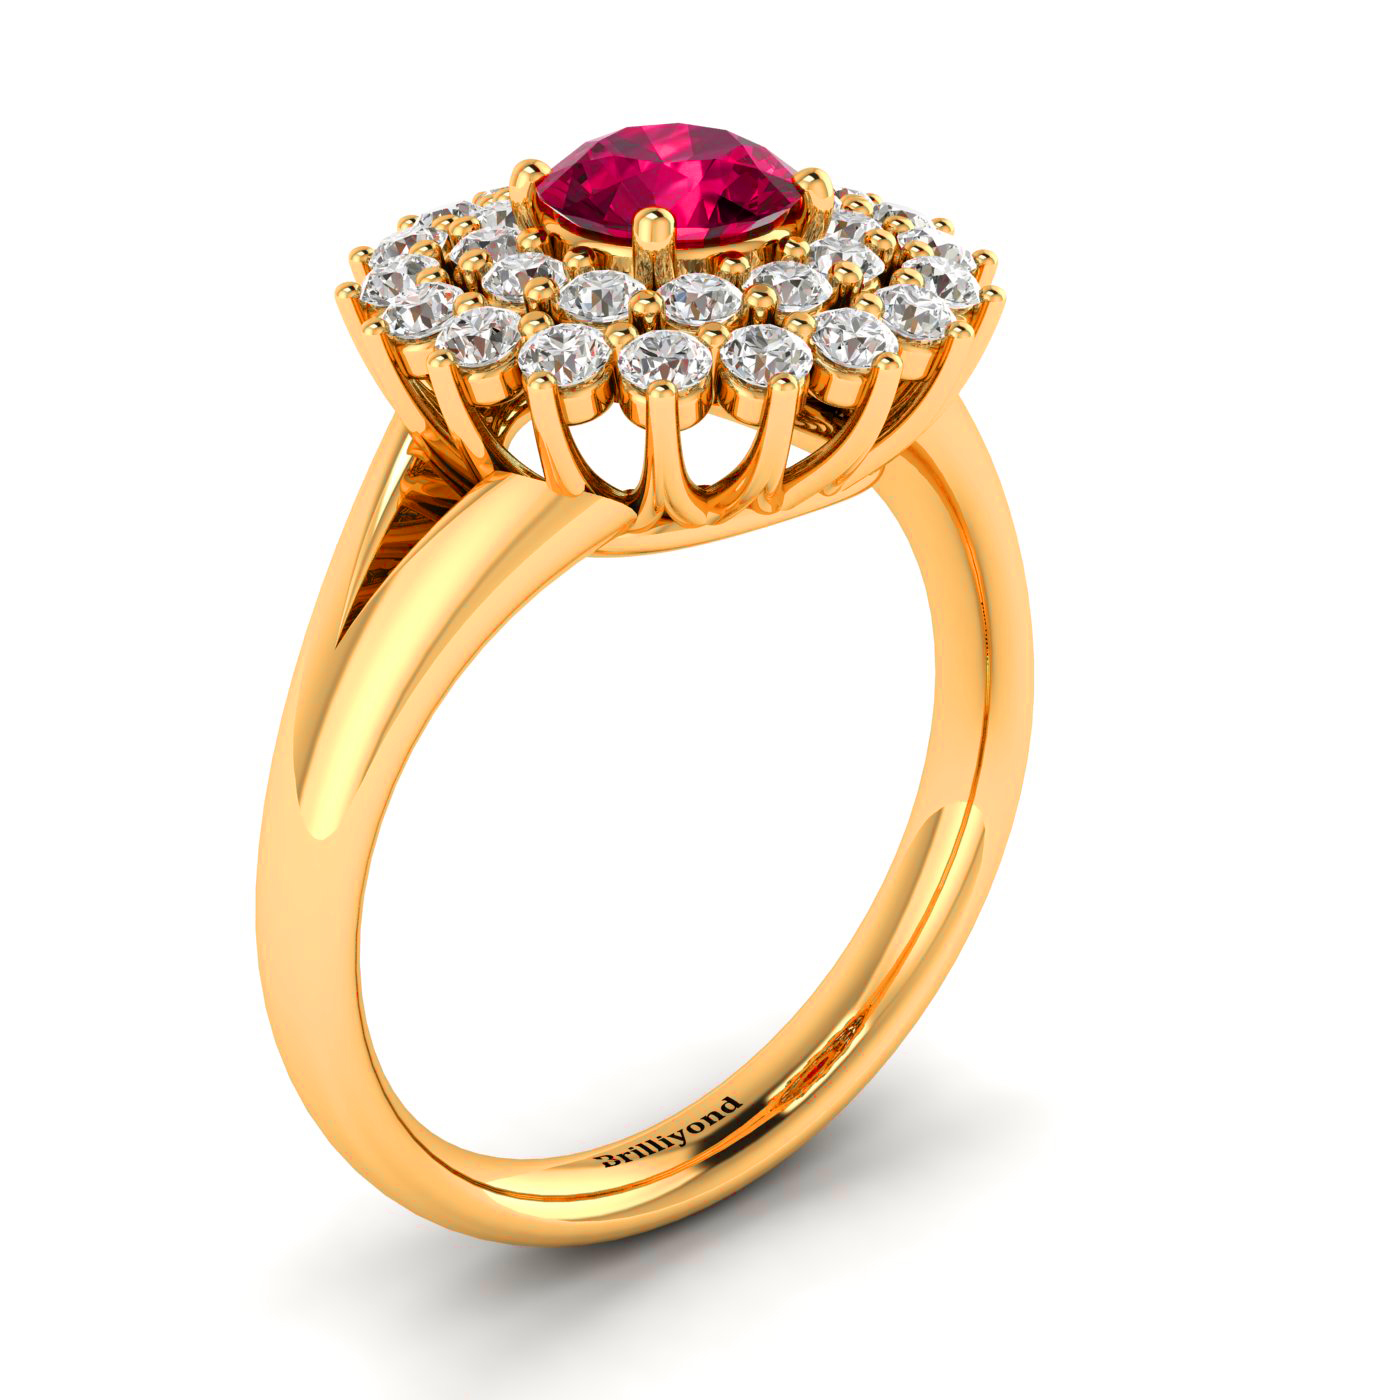 Ruby Cluster Engagement Ring with Diamond Halo in 18k Yellow Gold Band